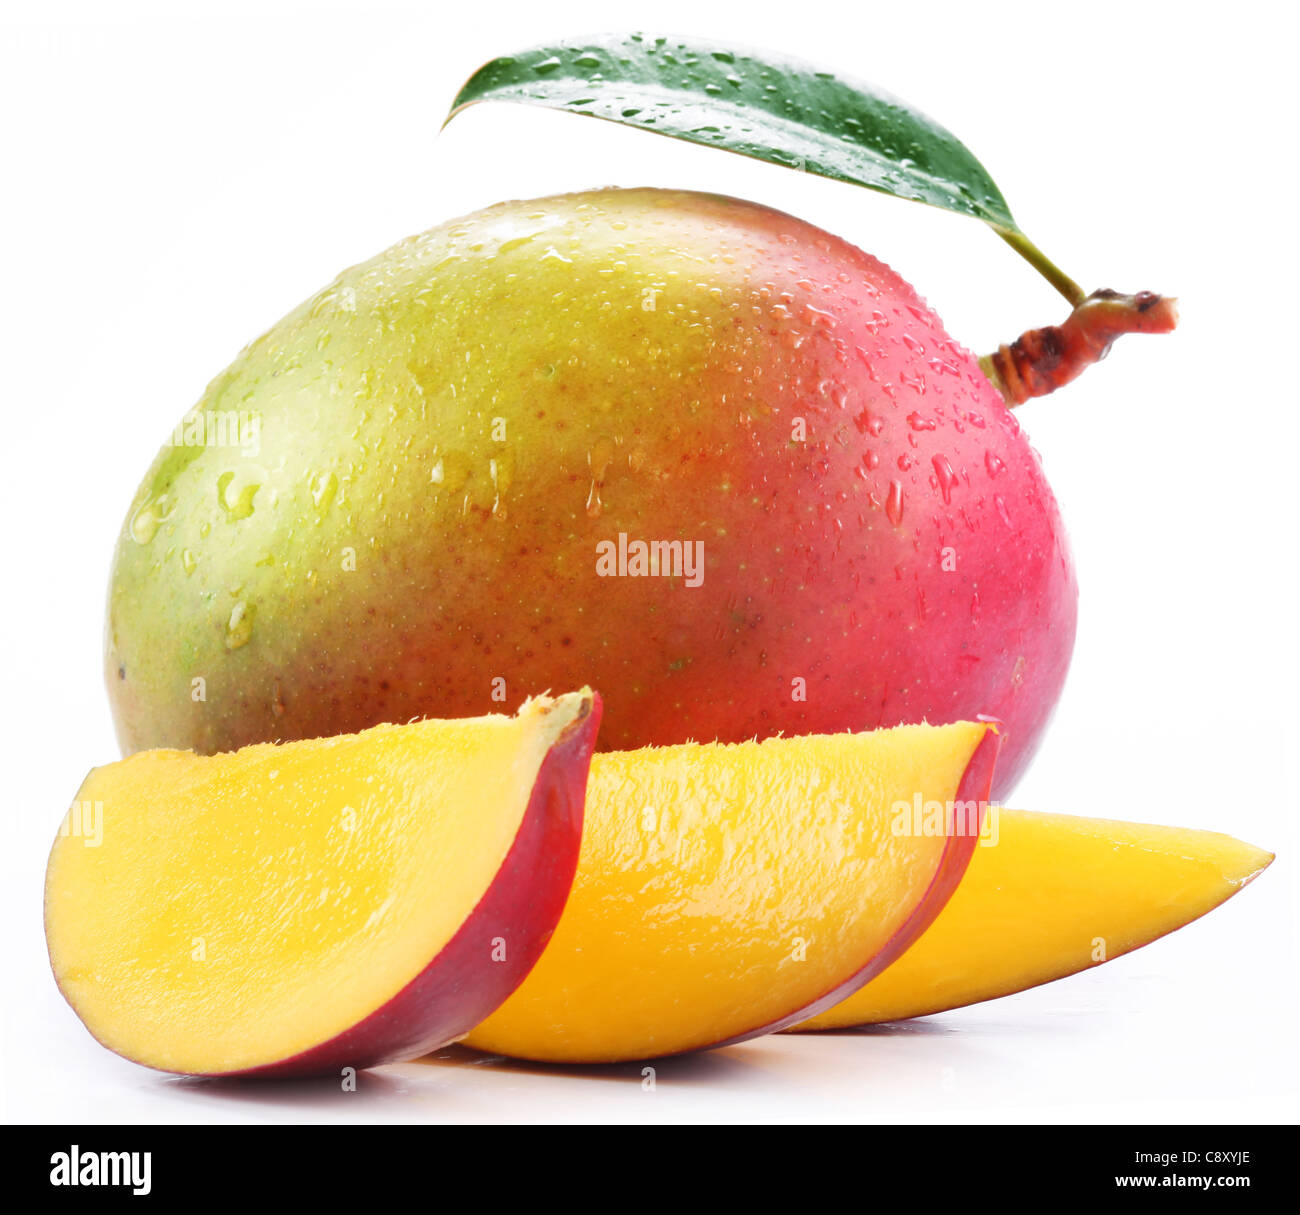 Mango with slices on a white background. - Stock Image